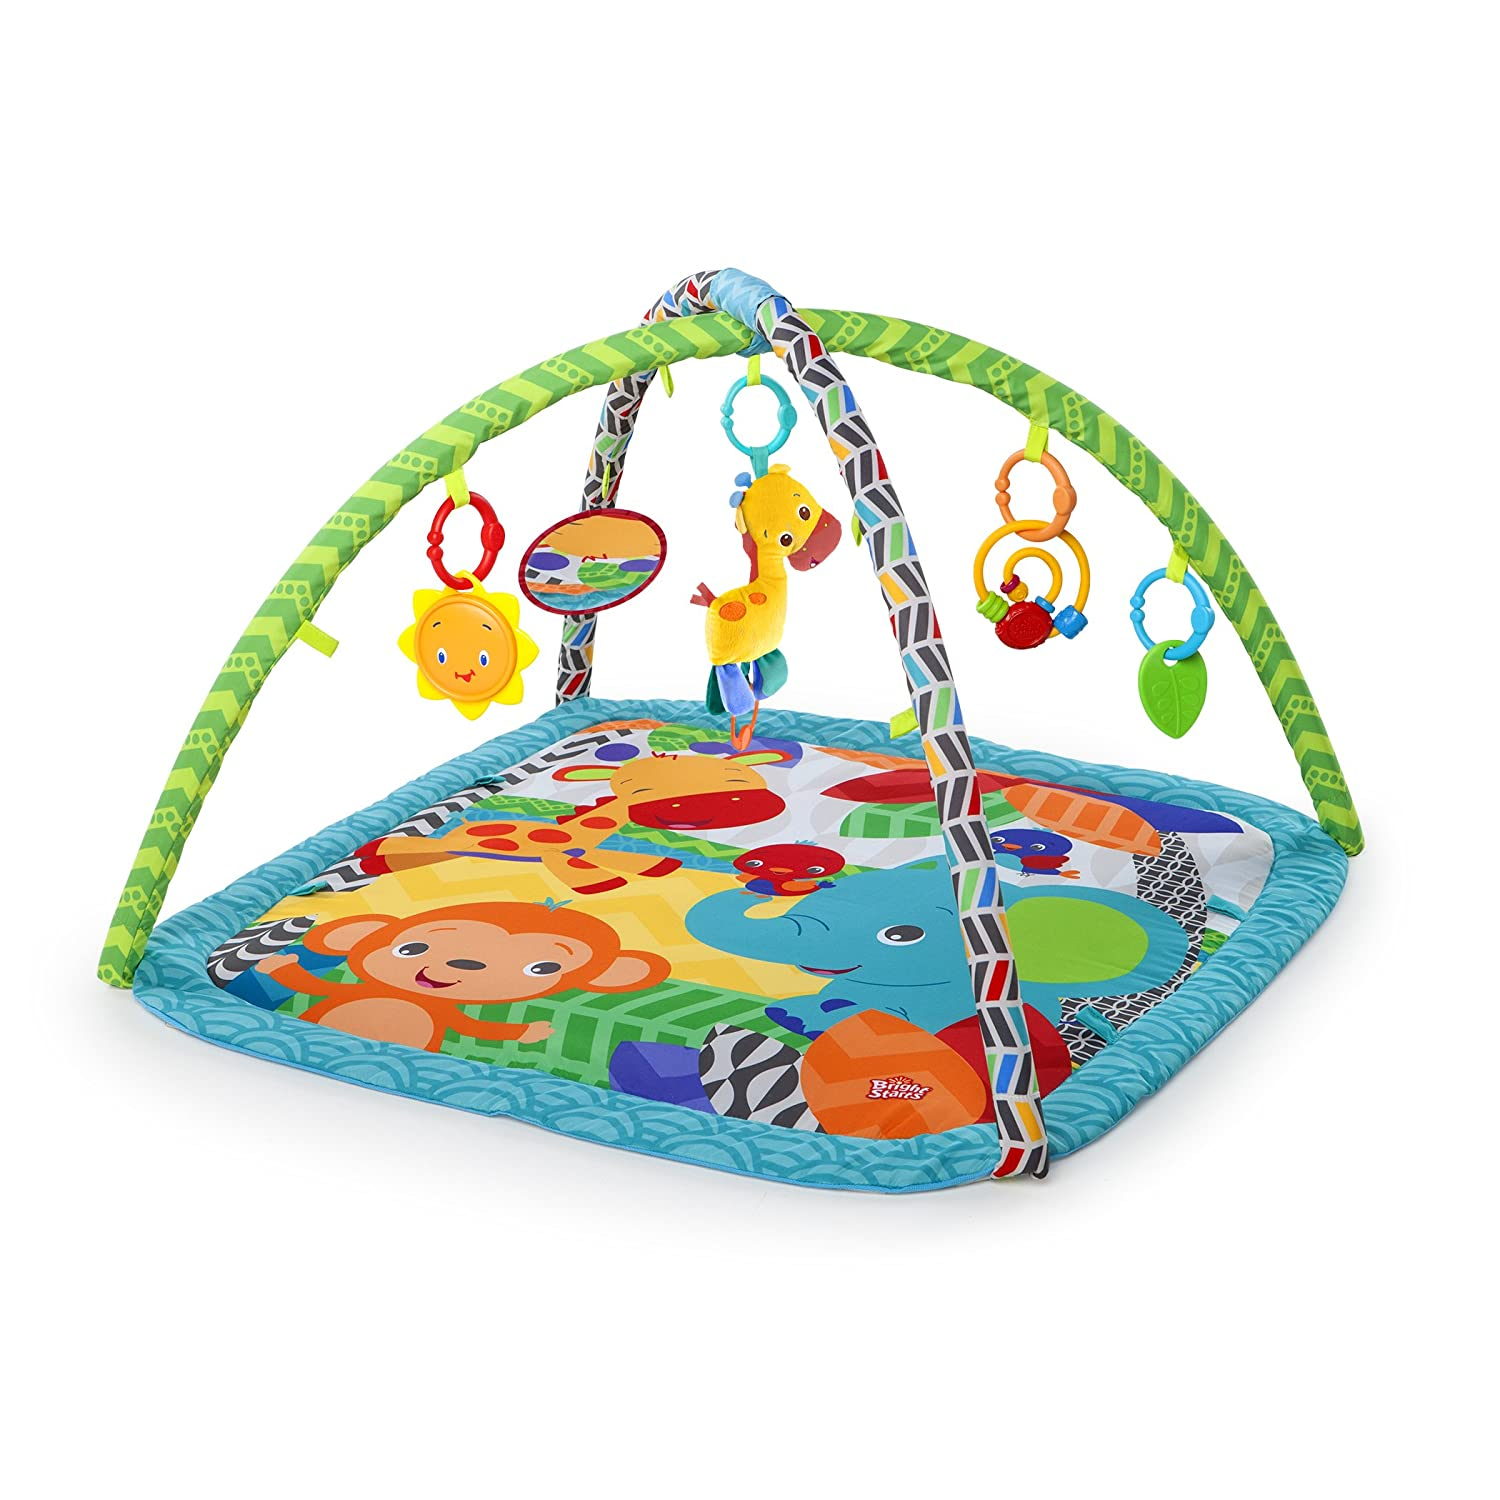 Bright Starts Charming Chirps Activity Gym, Pretty In Pink Kids II 52170